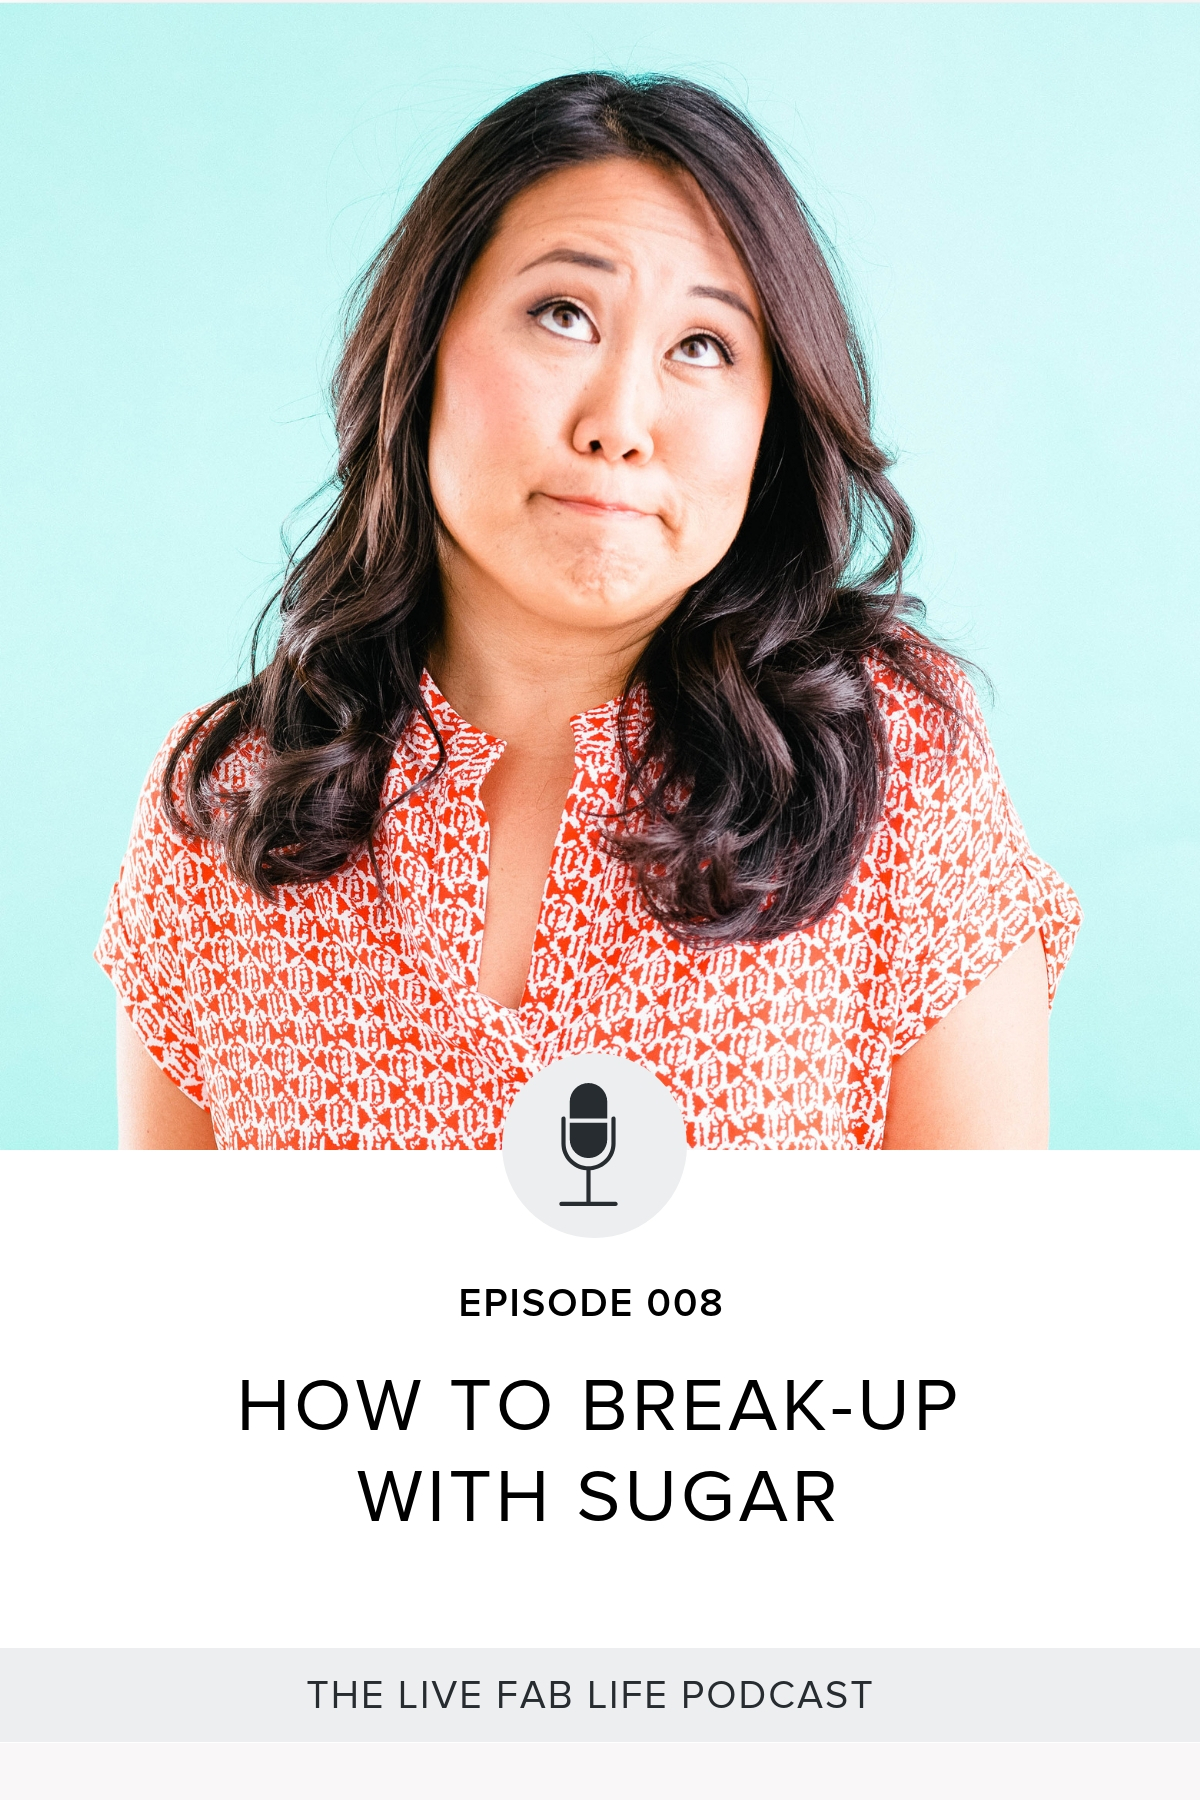 Episode 008: How to Break-up with Sugar